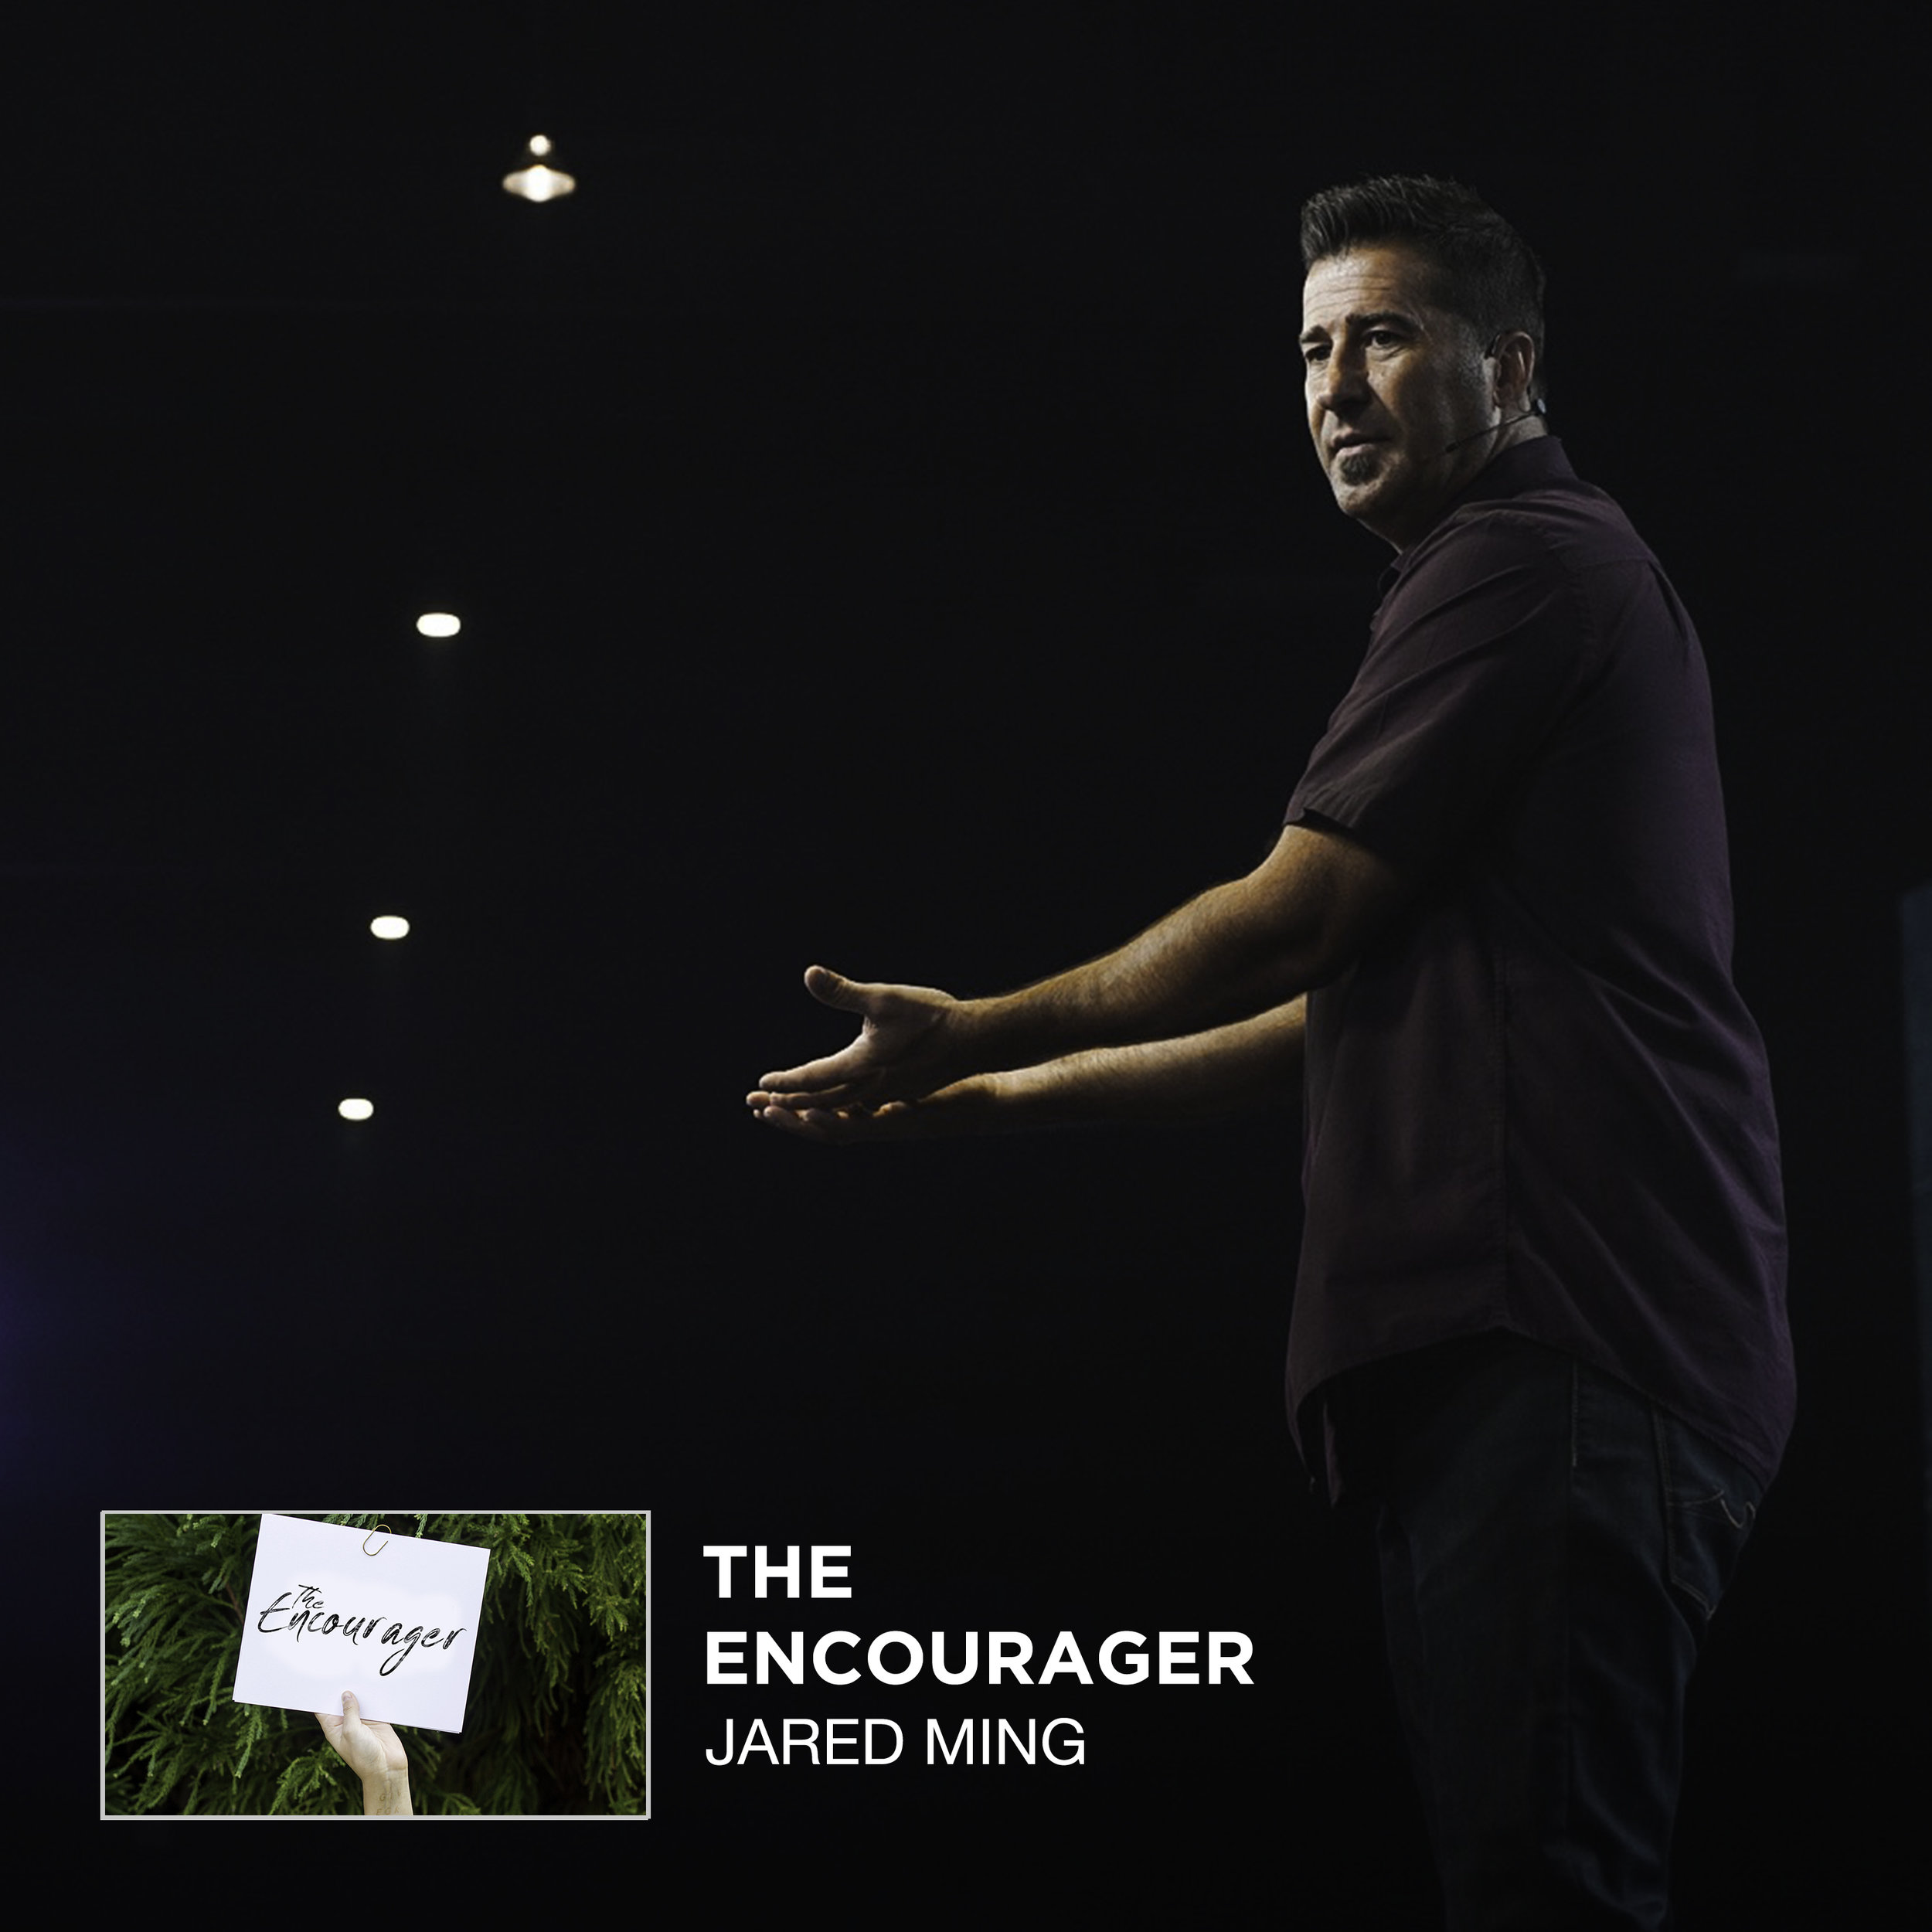 The Encourager - Jared Ming Web.jpg